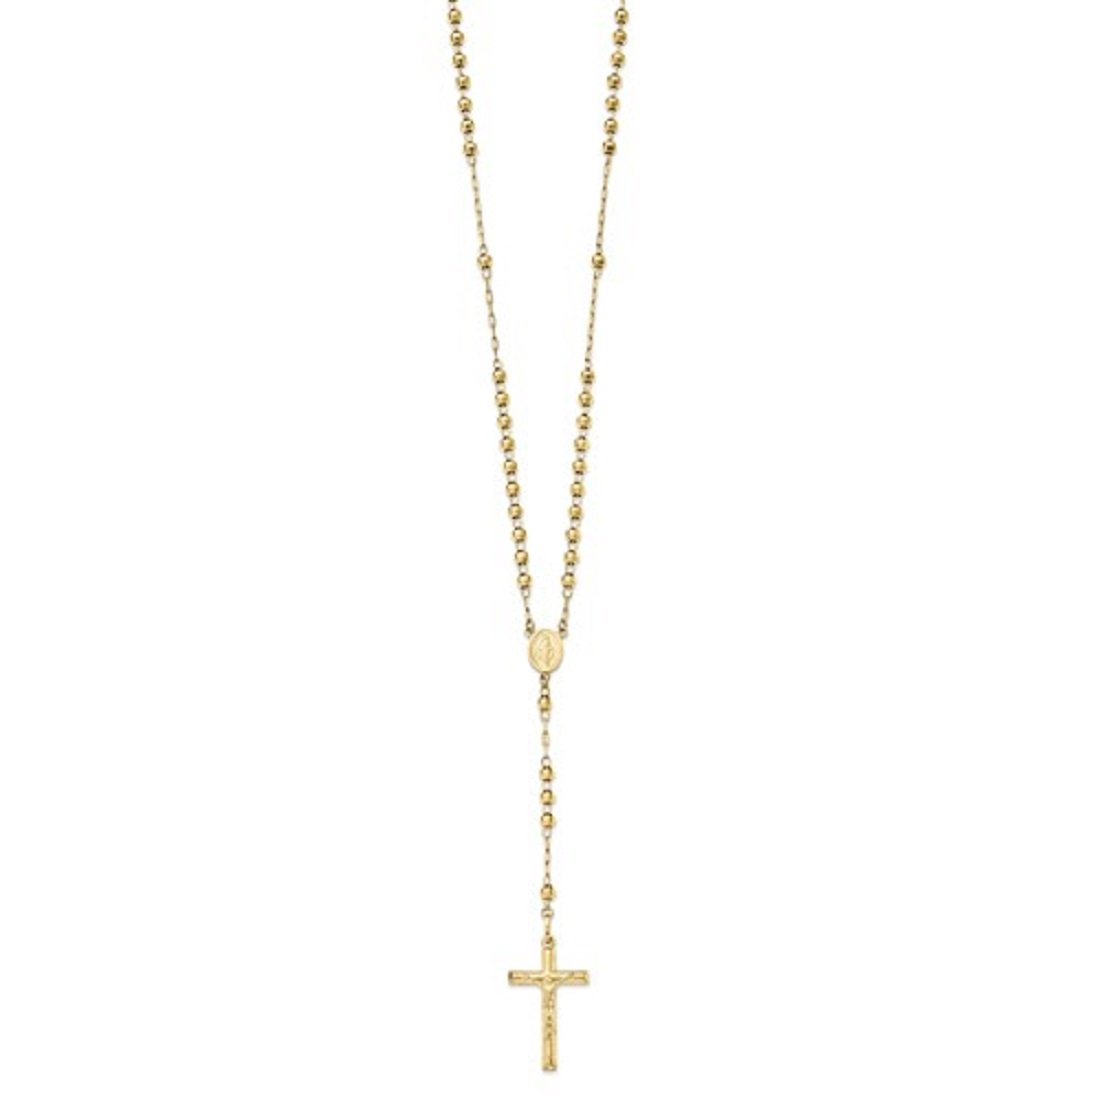 Roxx Fine Jewelry 14K Yellow Gold Ornate Miraculous Medal Rosary Necklace 4.00mm Beads 24''